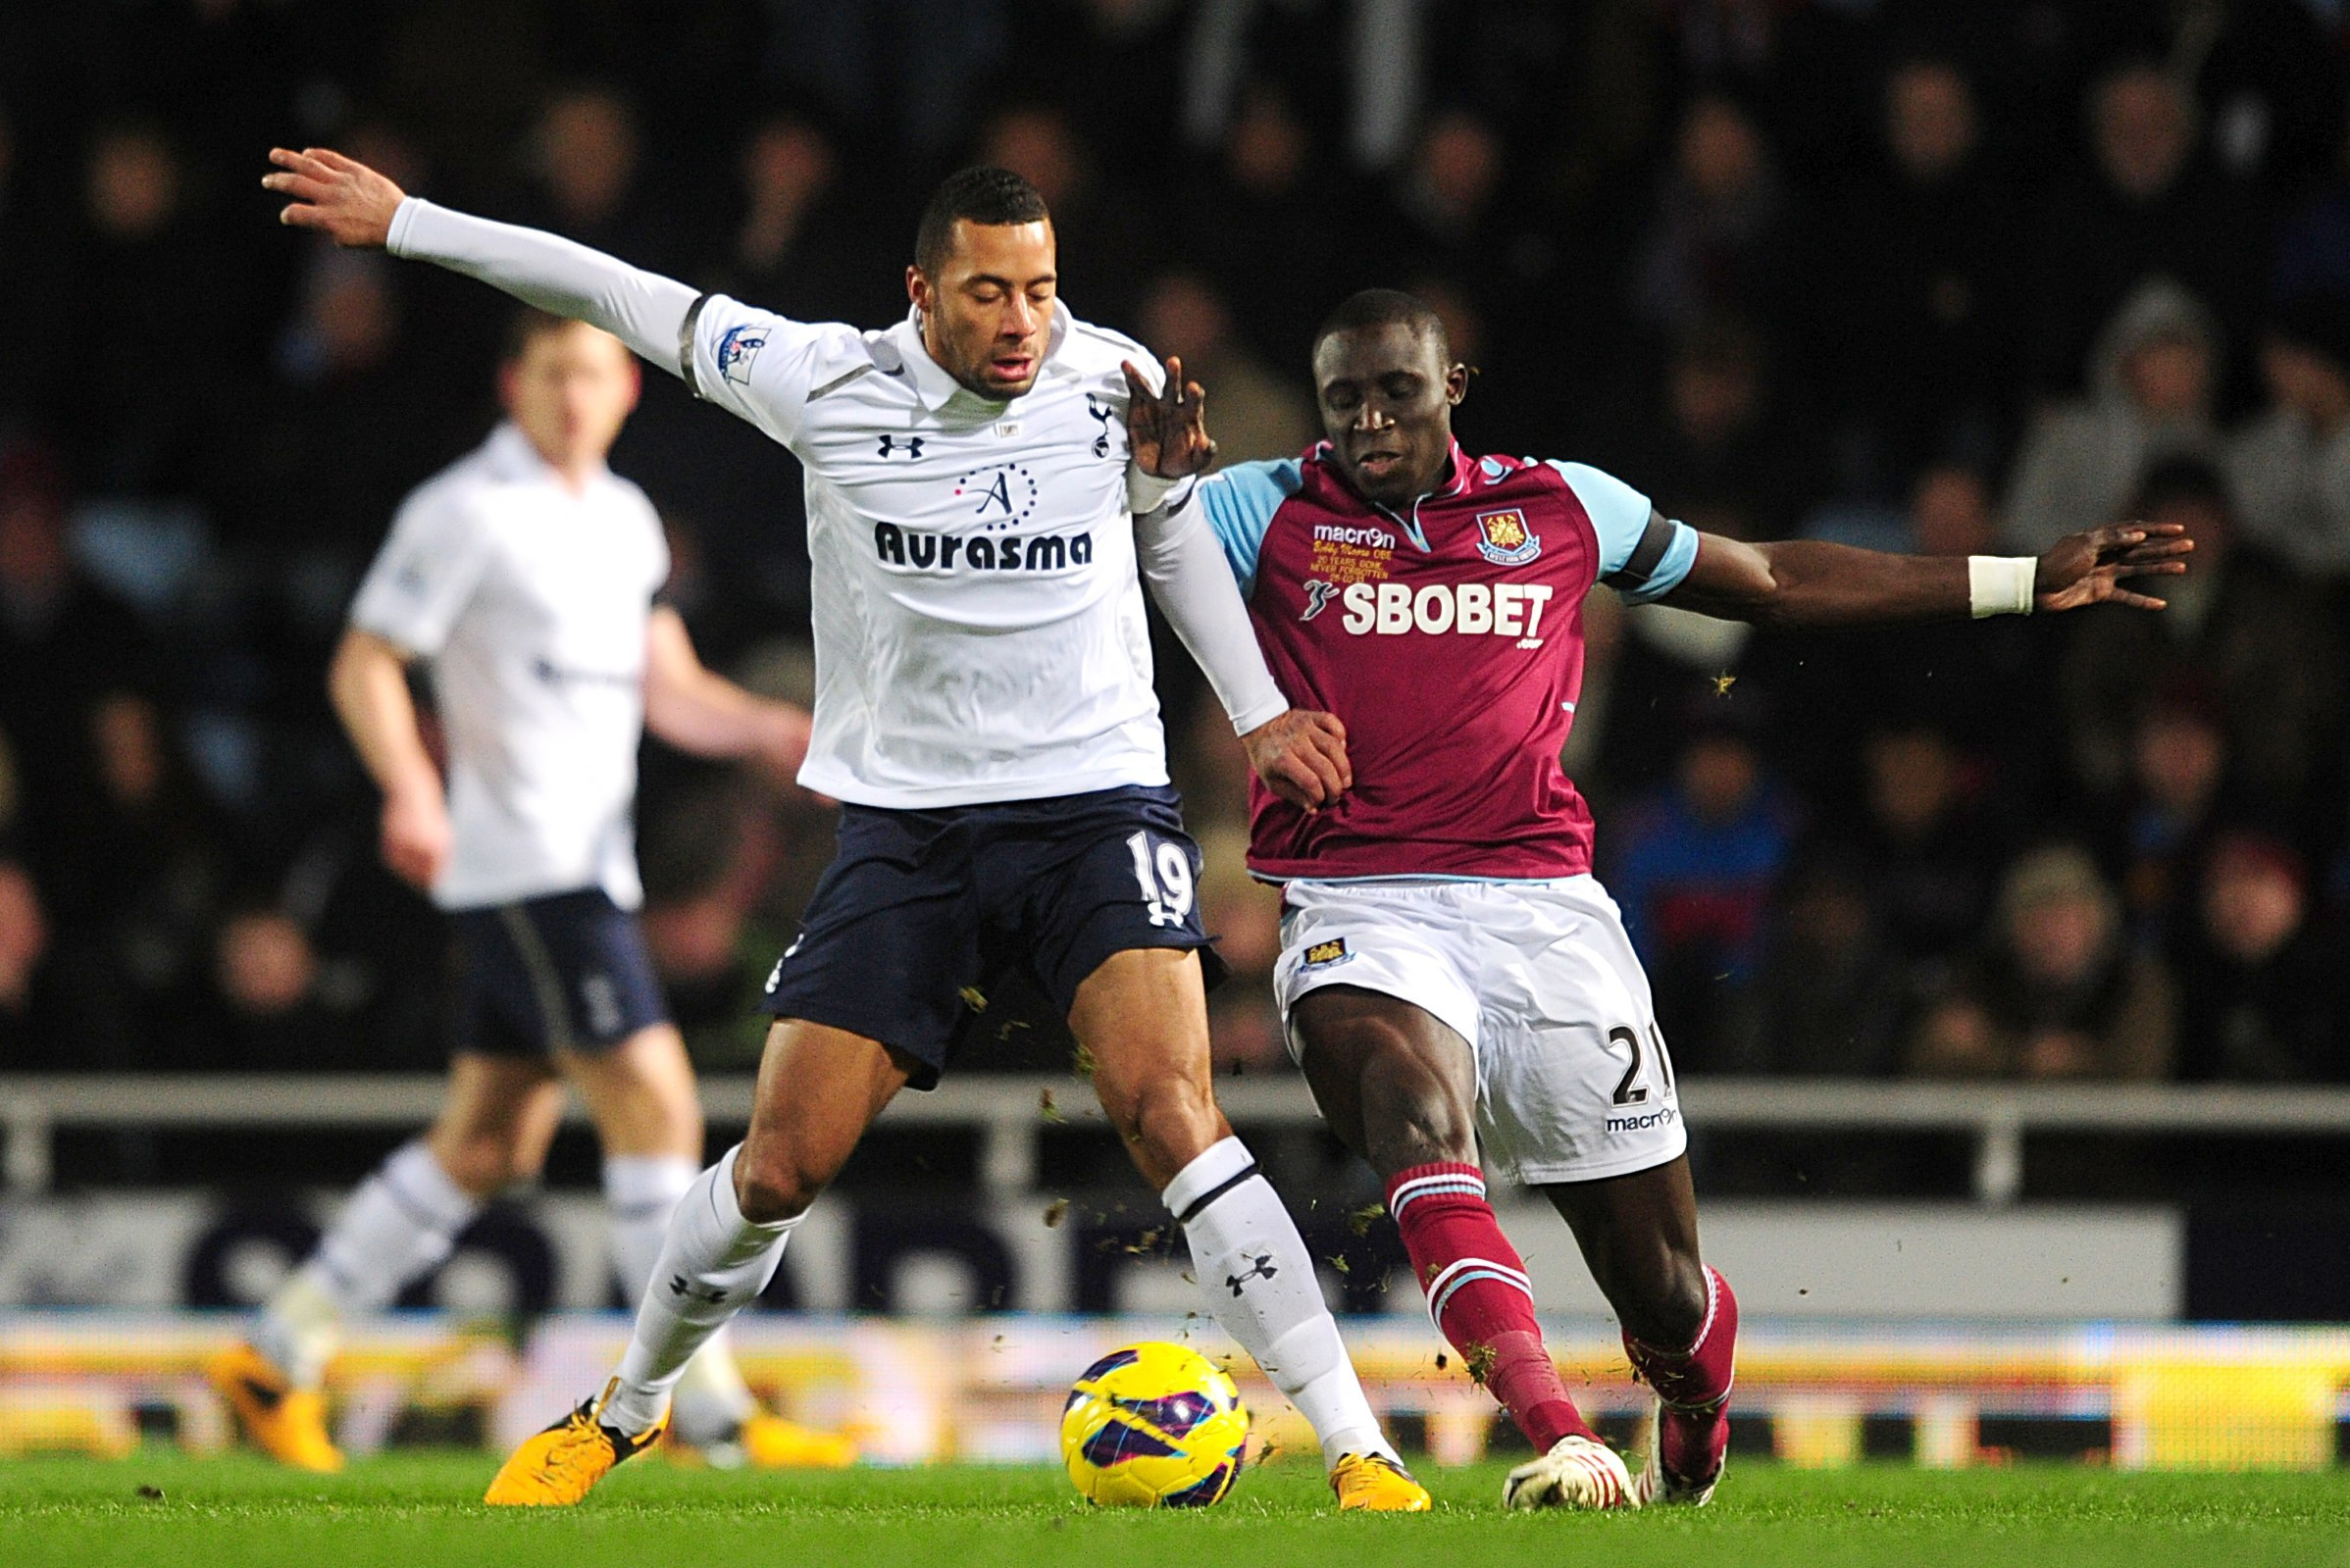 Tottenham Hotspur's Mousa Dembele (left) and West Ham United's Mohamed Diame (right) battle for the ball during the Barclays Premier League match at Upton Park, London. PRESS ASSOCIATION Photo. Picture date: Monday February 25, 2013. See PA story SOCCER West Ham. Photo credit should read: Adam Davy/PA Wire. RESTRICTIONS: Editorial use only. Maximum 45 images during a match. No video emulation or promotion as 'live'. No use in games, competitions, merchandise, betting or single club/player services. No use with unofficial audio, video, data, fixtures or club/league logos.